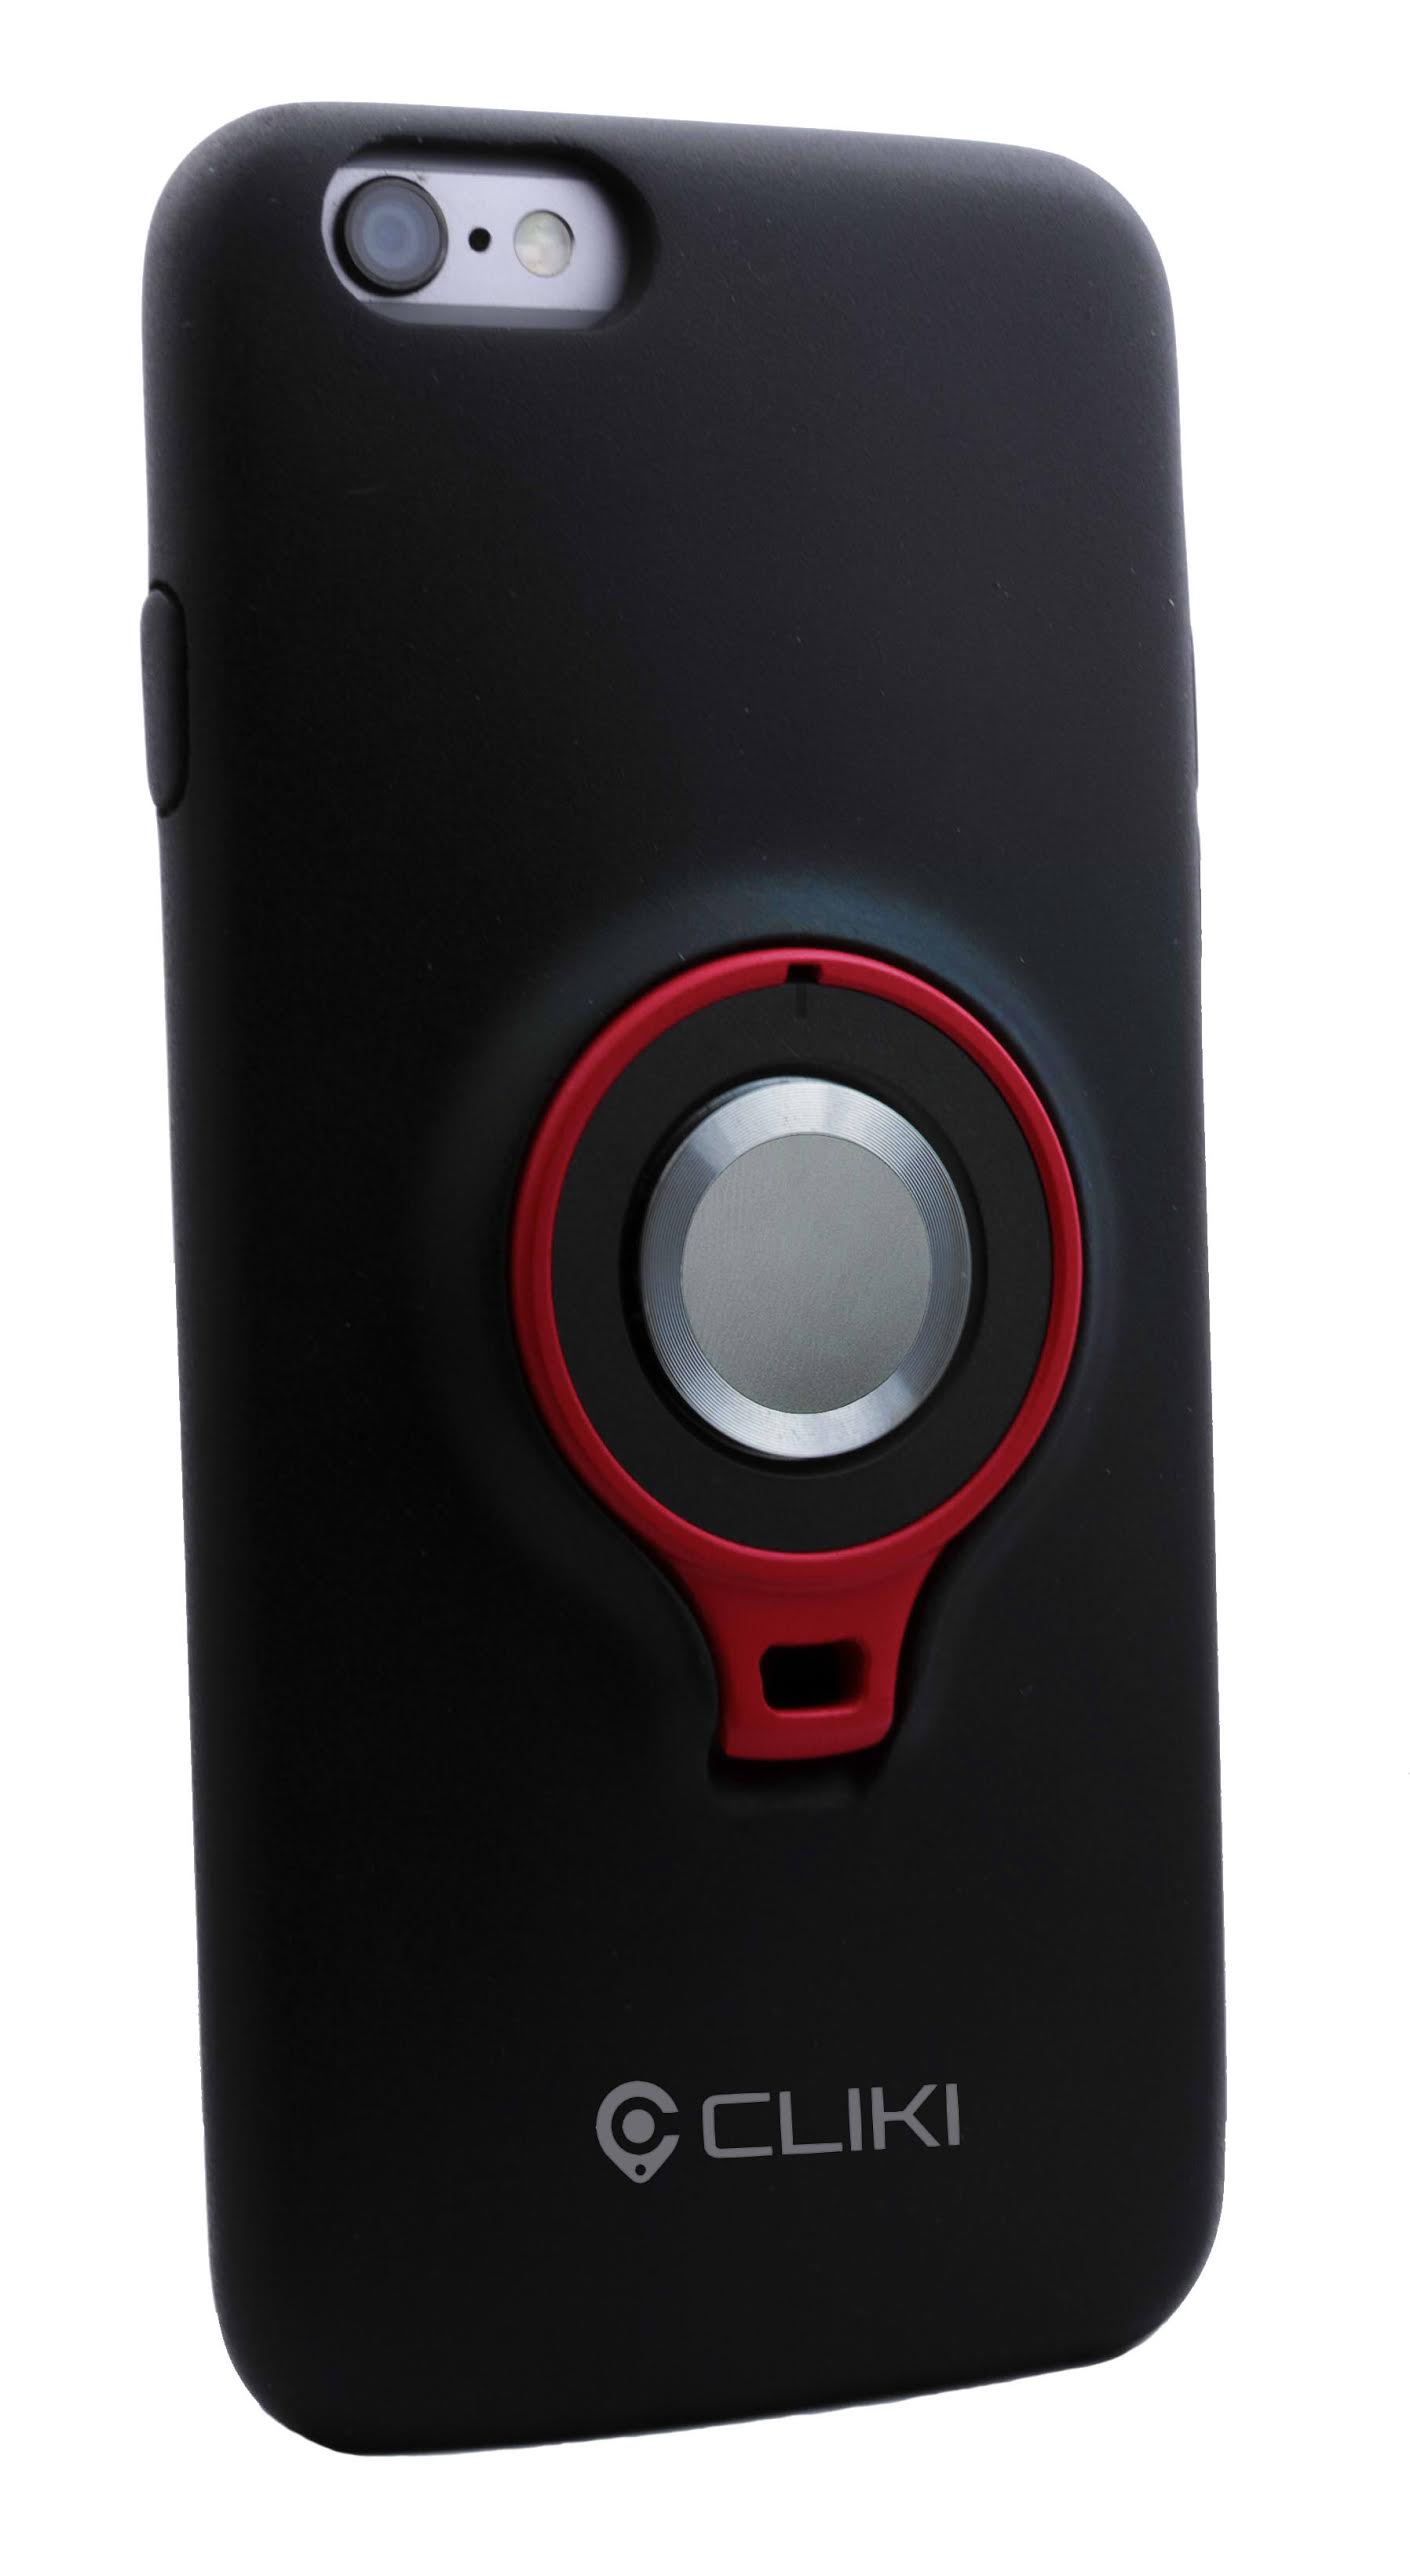 Cliki the new case with a removable remote